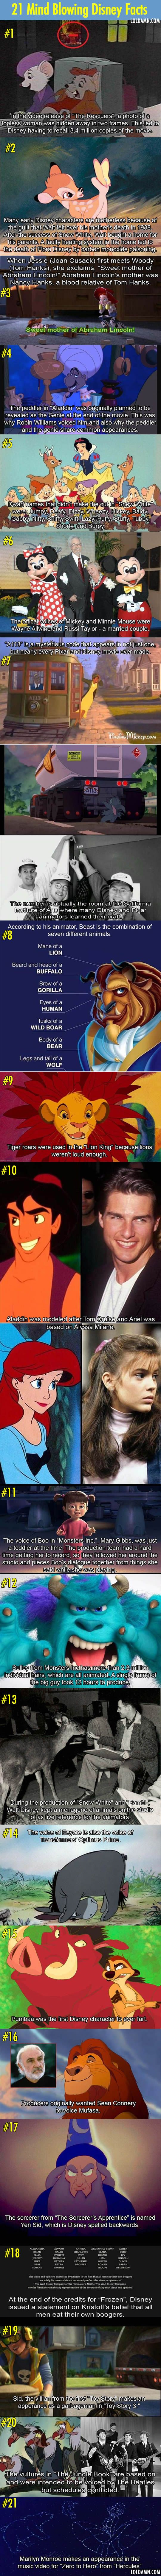 Mind Blowing Disney Movie Facts In 21 Pictures.